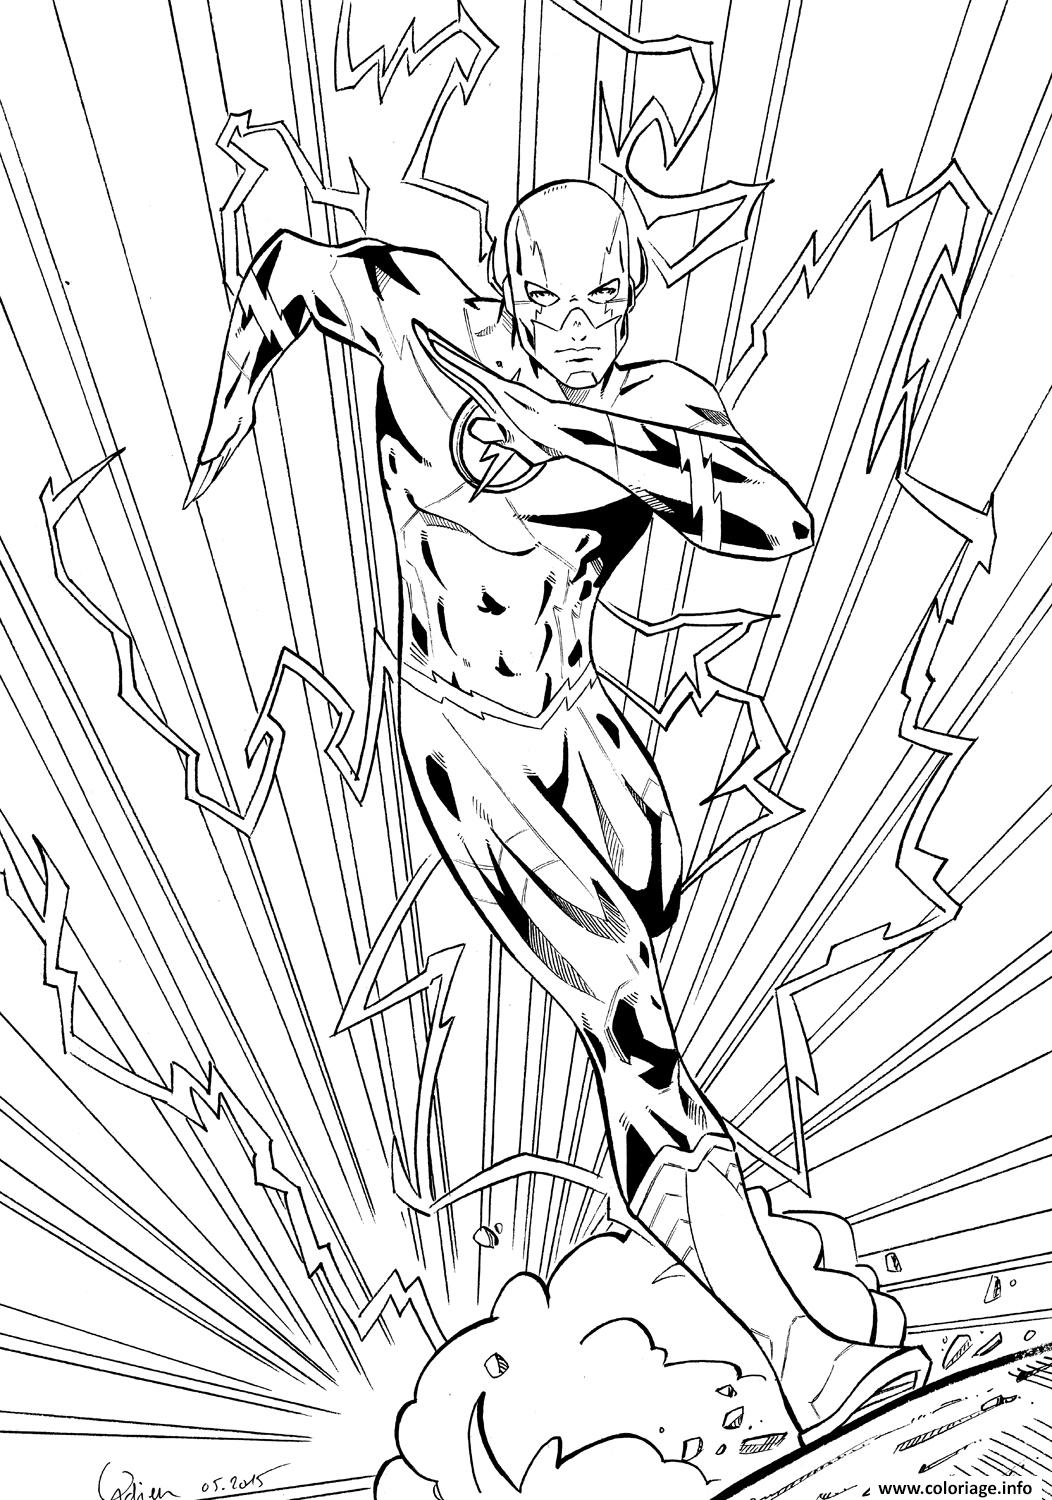 Coloriage flash super heros en mode electrique - Dessin de super heros ...